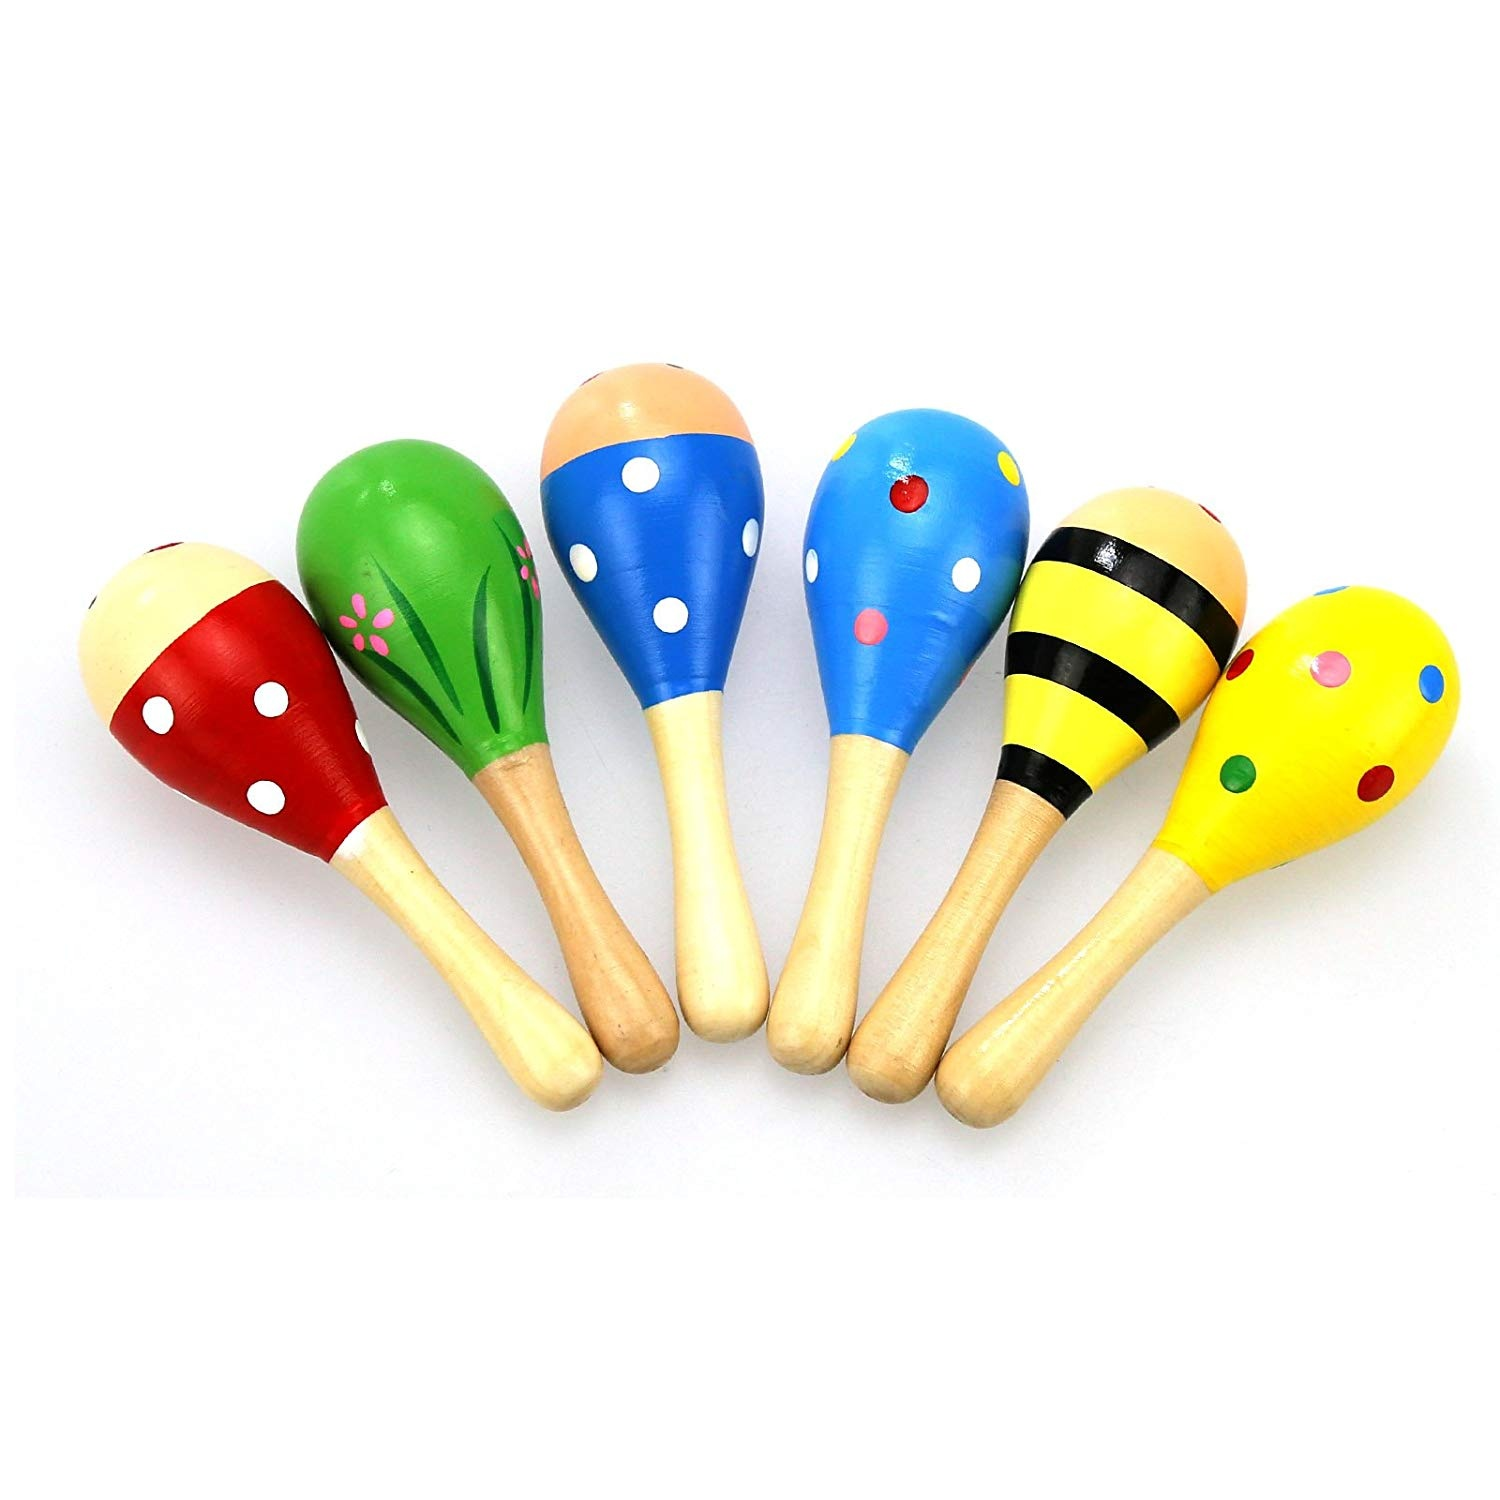 Kids Baby Wooden Toy Maracas Rumba Shakers Musical Party Rattles Hot NZ